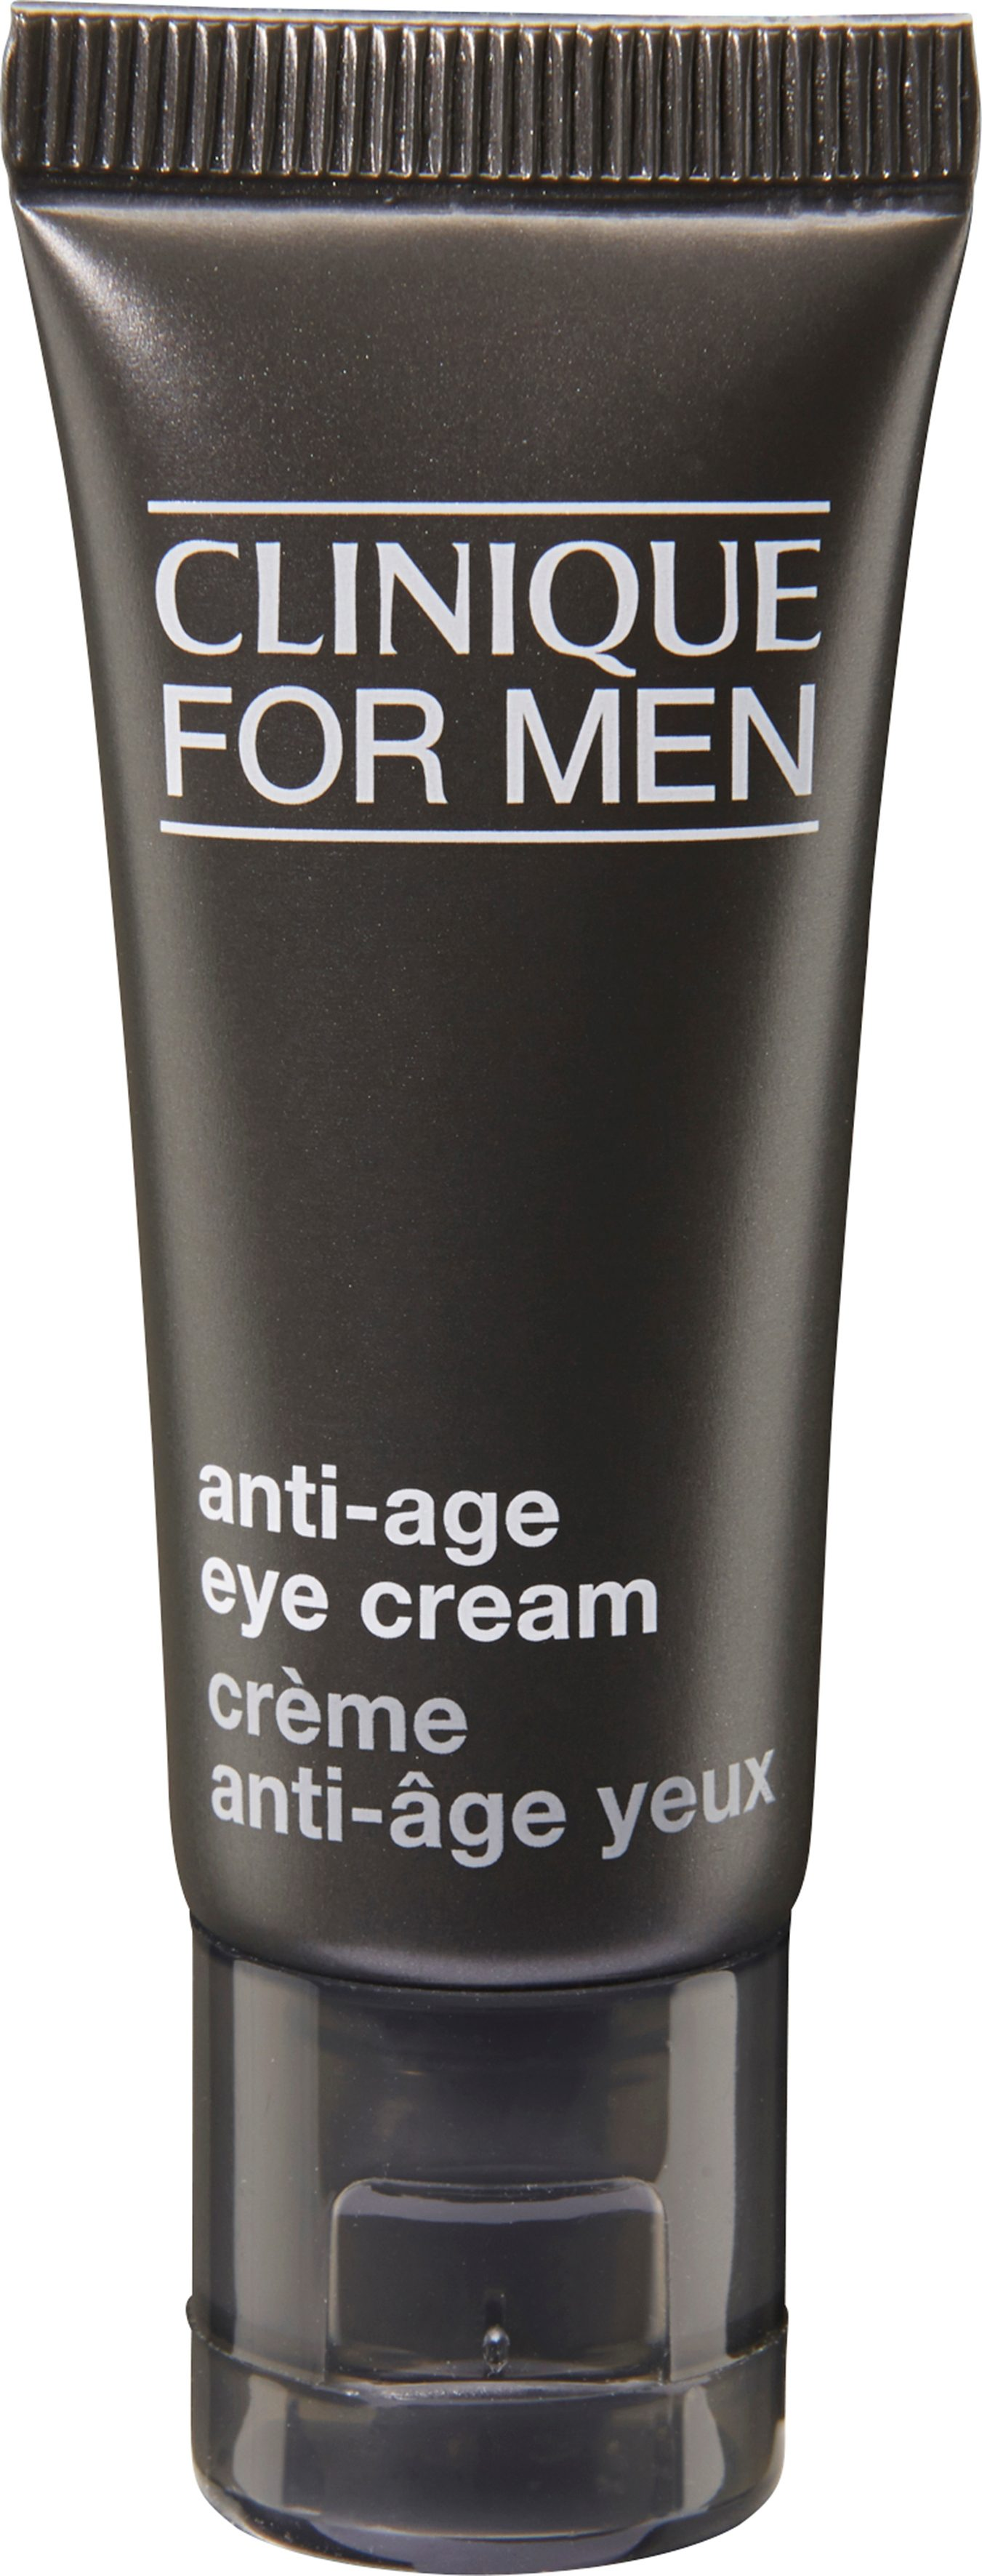 Clinique, »Anti-Age Eye Cream«, Augencreme